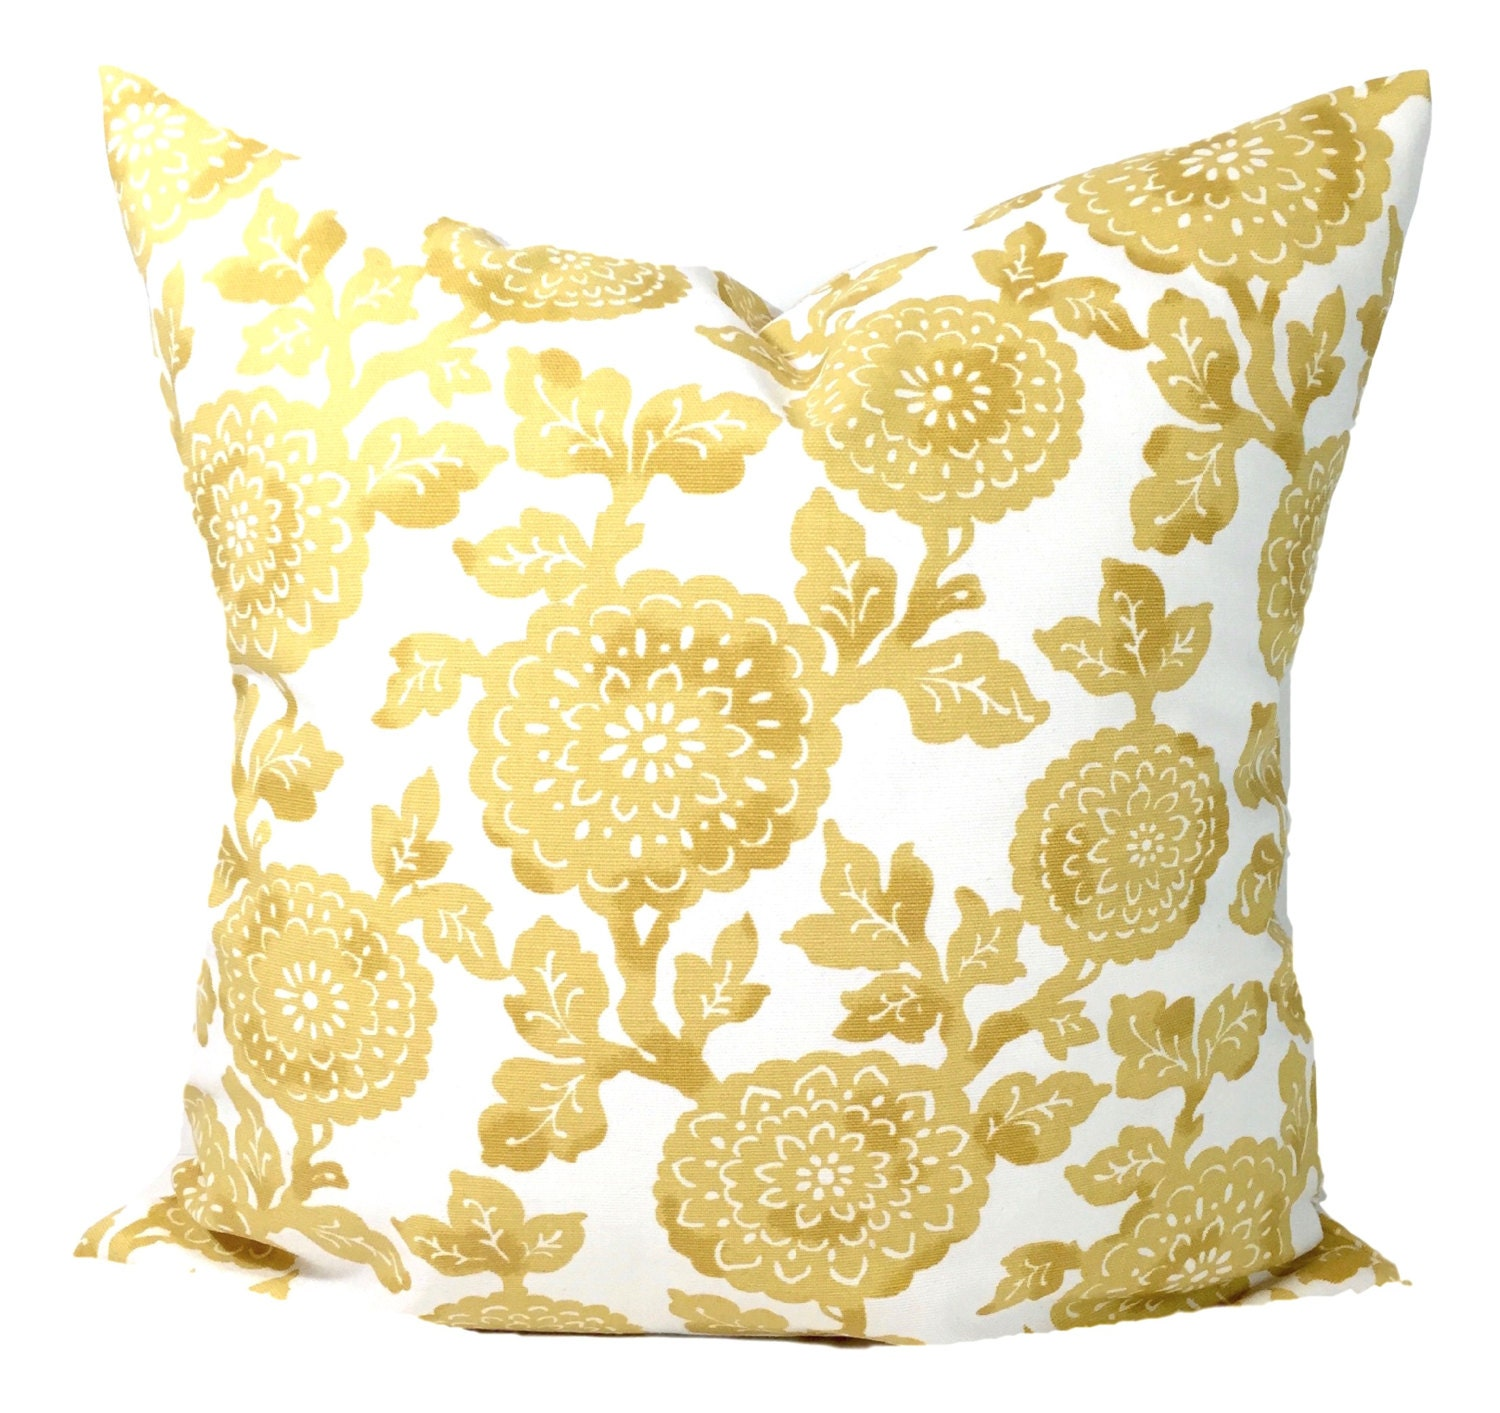 Throw Pillows Gif : GOLD PILLOWSPillow Cover Decorative Pillow Throw Pillow